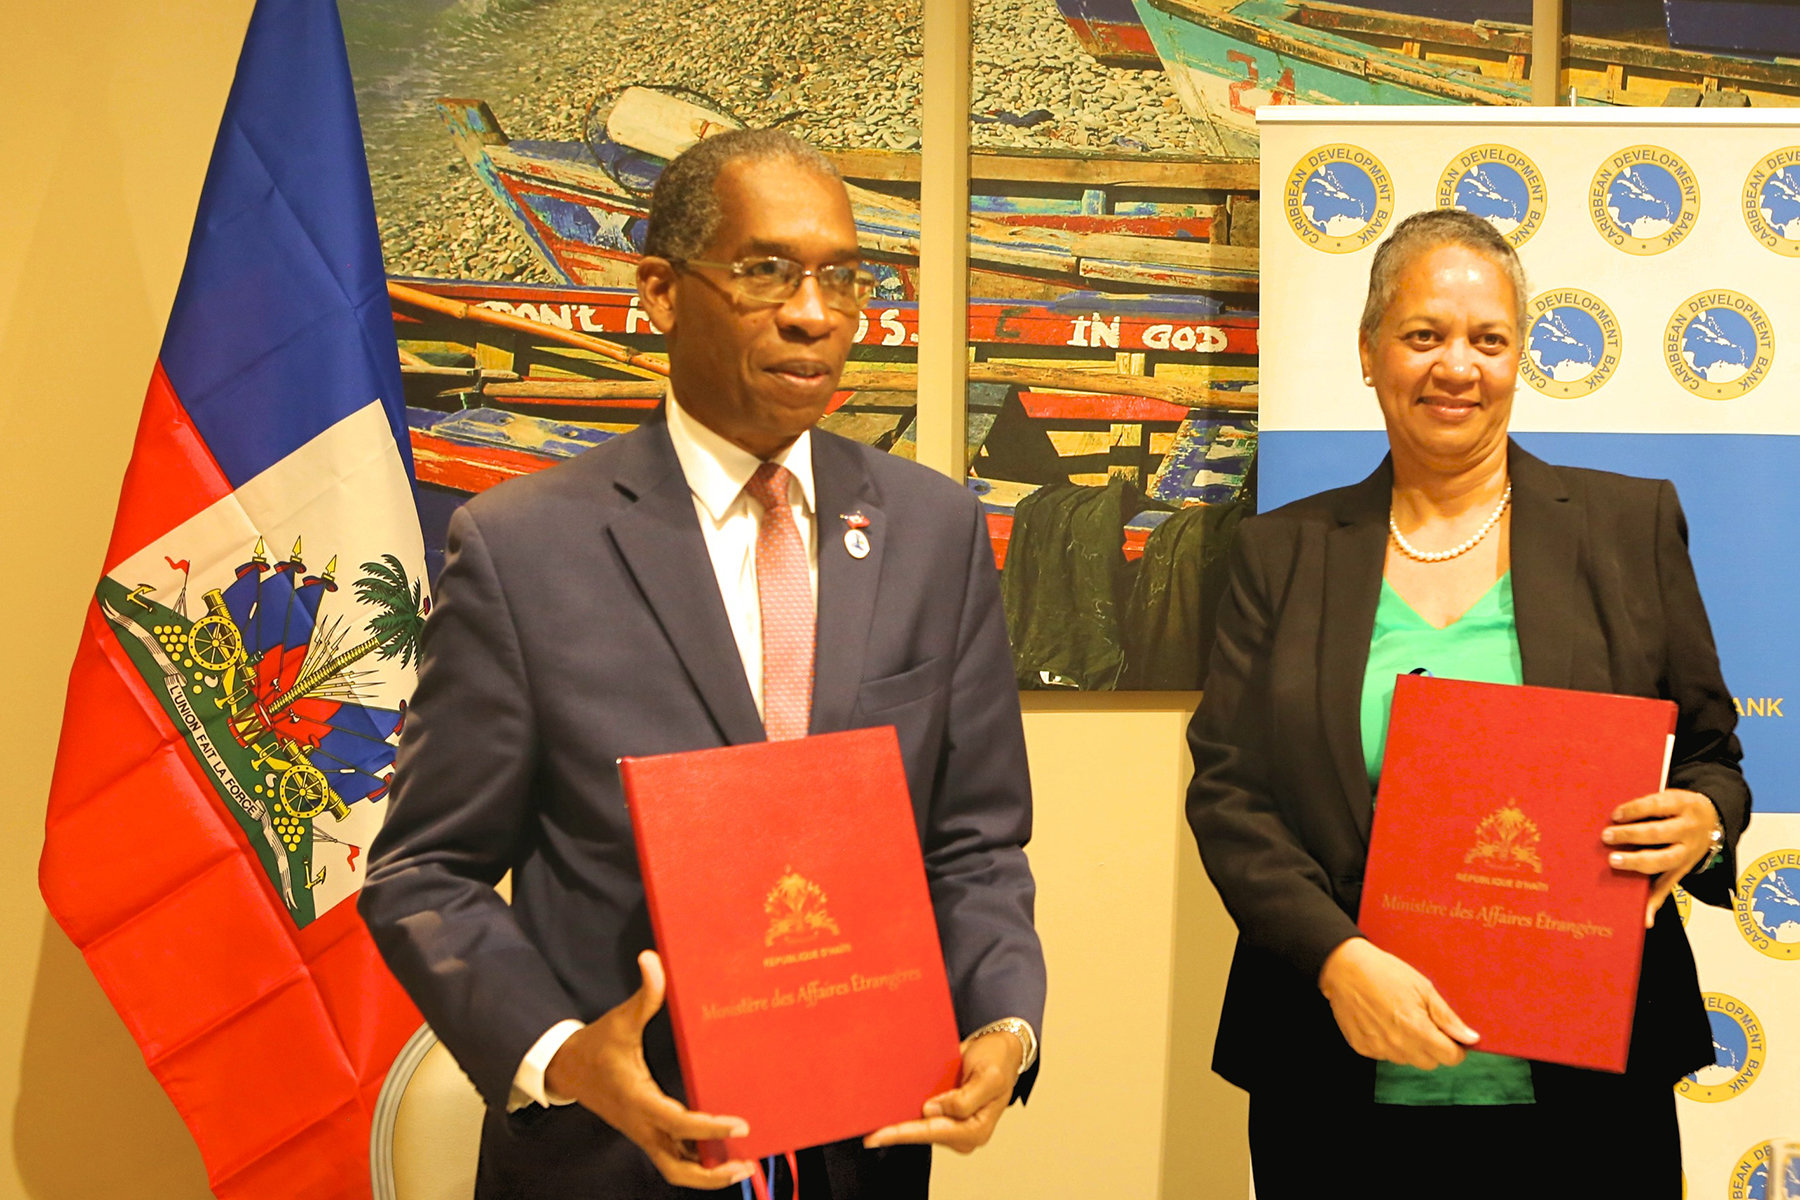 Haiti's Minister of Foreign Affairs, His Excellency Antonio Rodrigue (left) and Vice-President (Operations), Caribbean Development Bank (CDB), Monica La Bennett (right), hold the signed country agreements after signing them on February 27, 2018. CDB will establish its first country office in the Republic of Haiti this year.